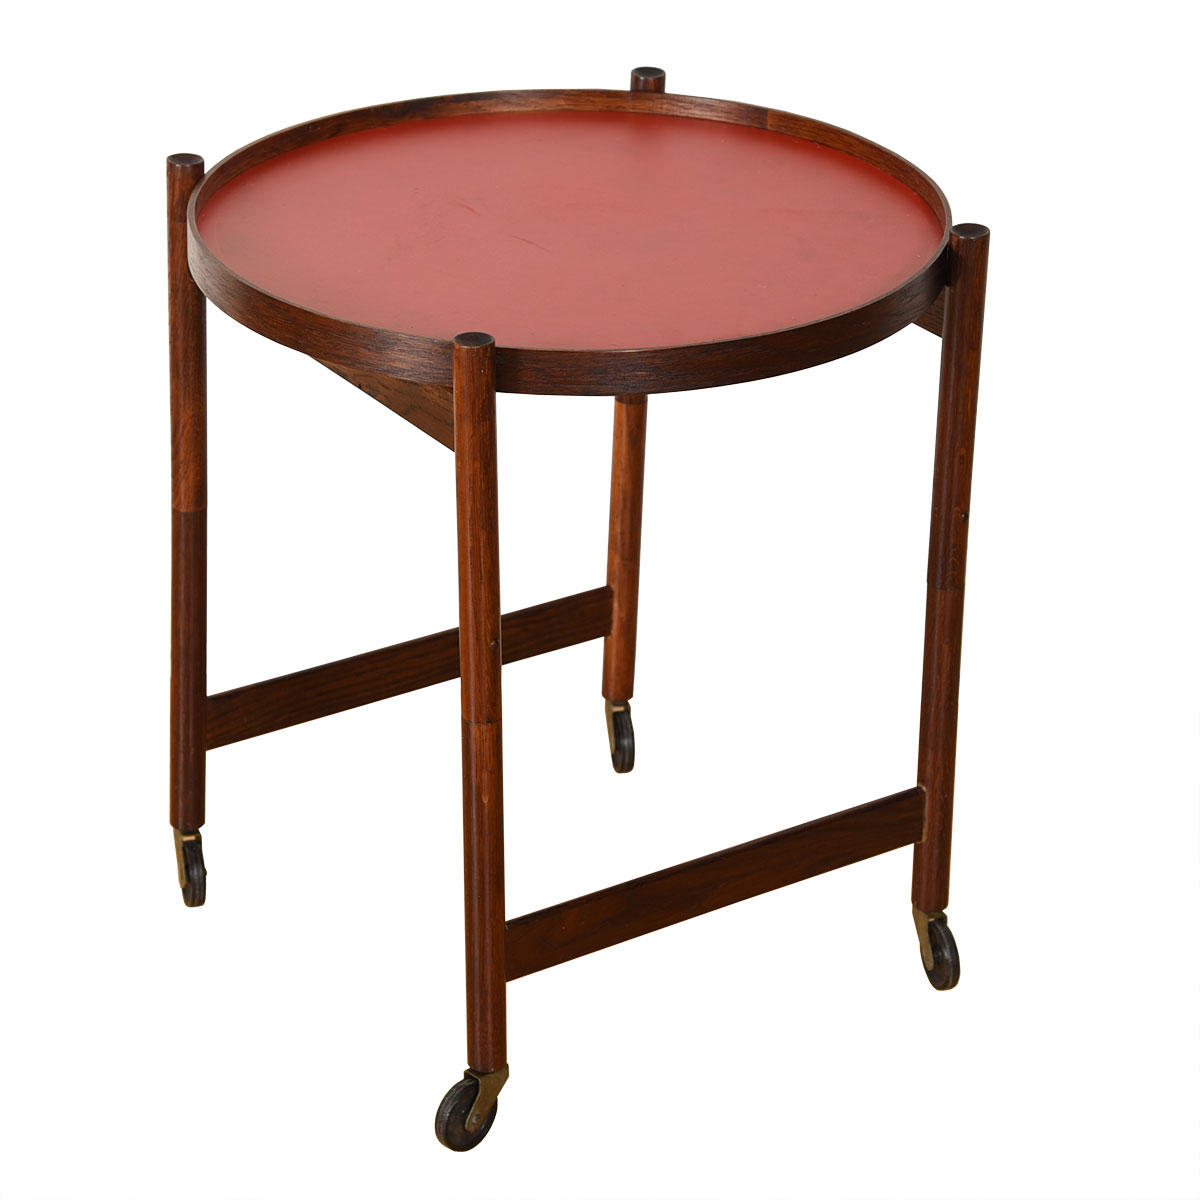 Danish Rosewood Collapsable Frame Flip-Top Accent Table